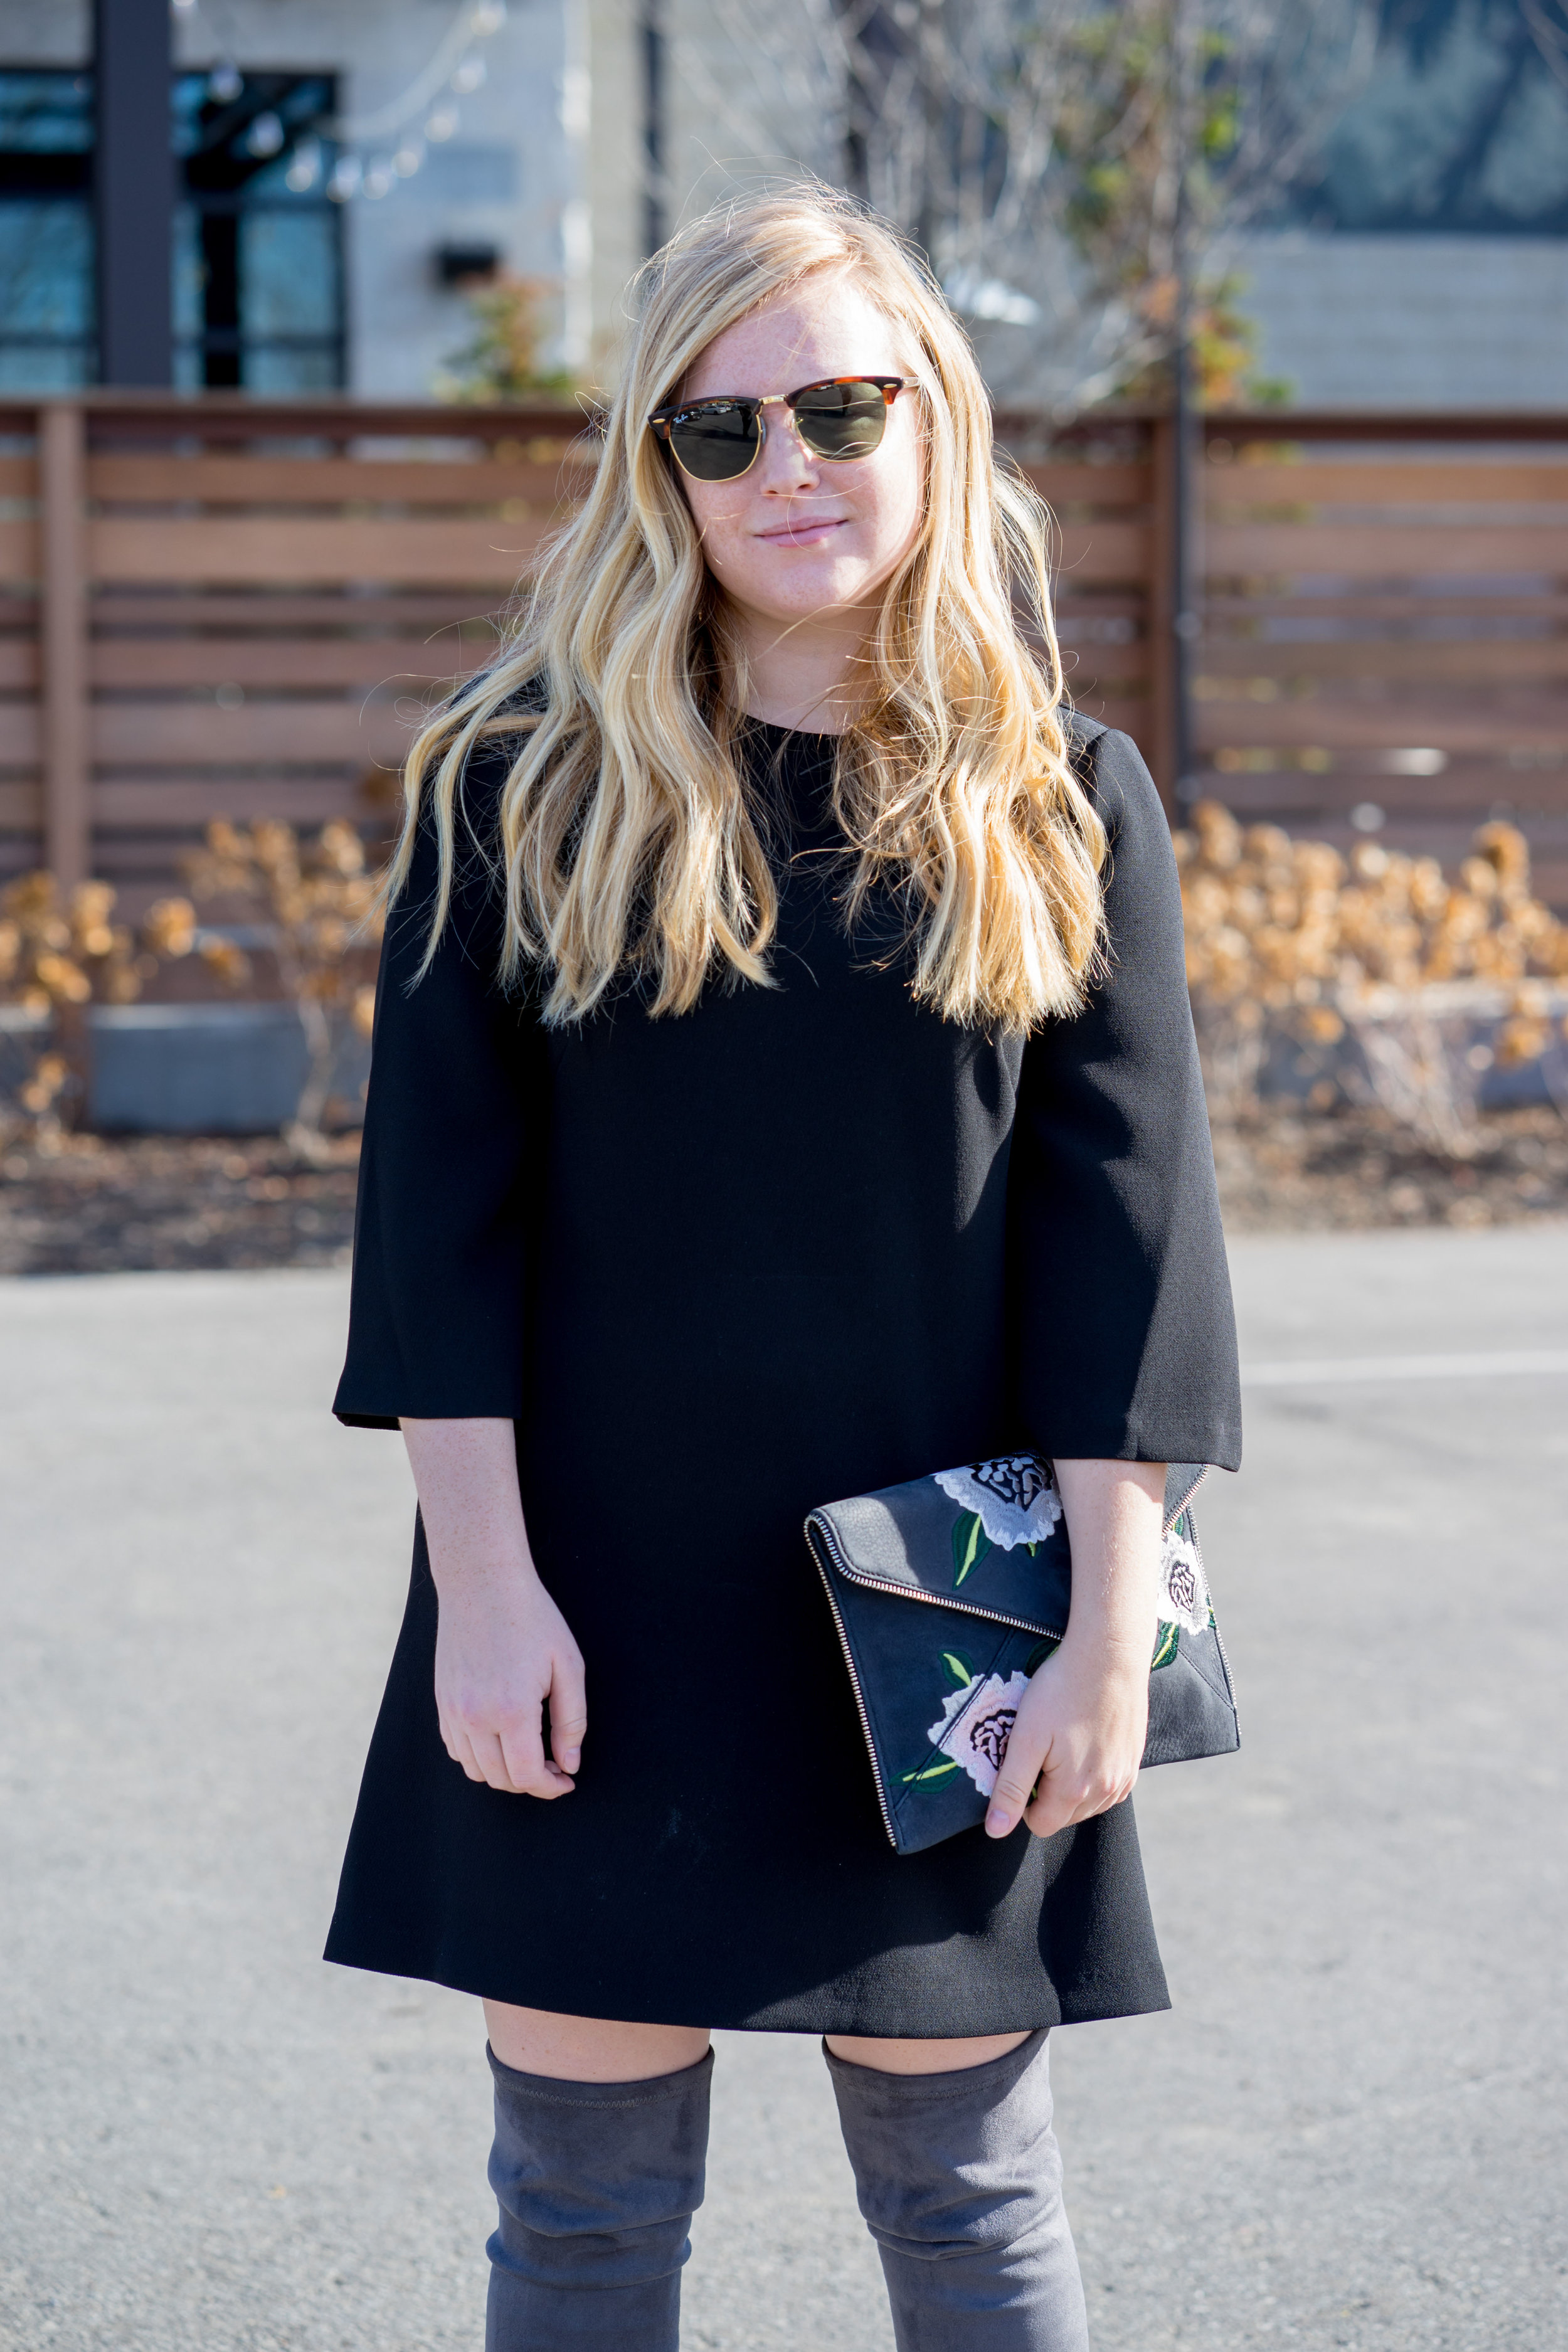 Maggie a la Mode - Steve Madden Isaac Over the Knee Boots, BCBGeneration Black Shift dress, Rebecca Minkoff Leo Nubuck Floral Clutch, Ray Ban Clubmaster sunglasses